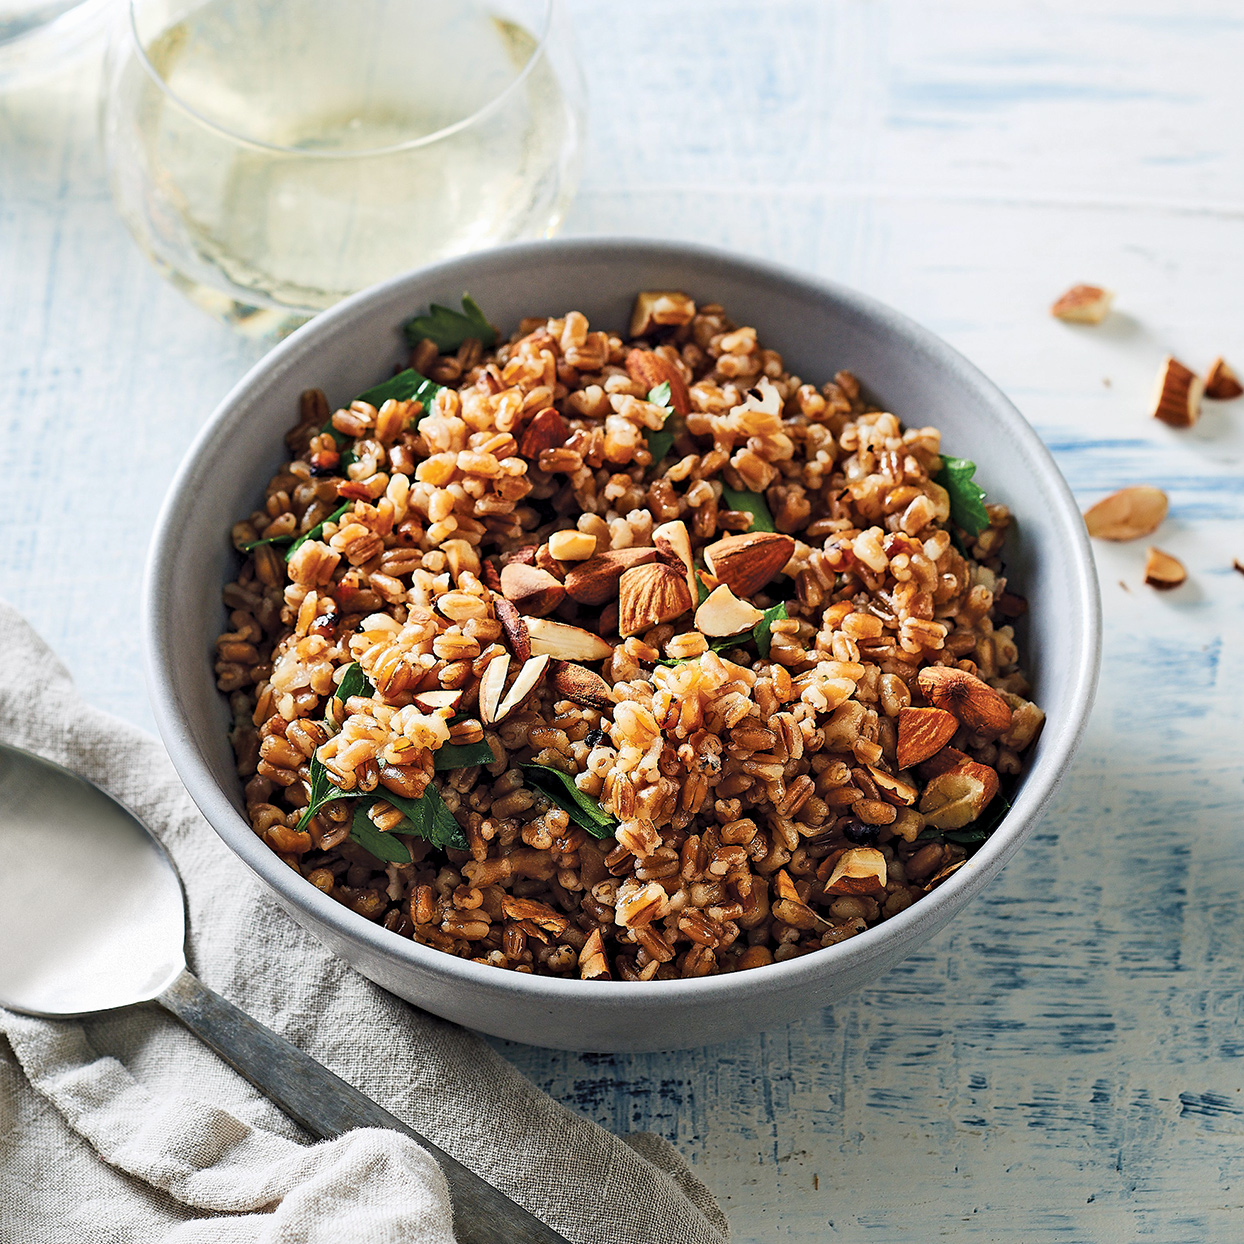 Slow-Cooker Herb-Infused Wheat Berry Pilaf Trusted Brands